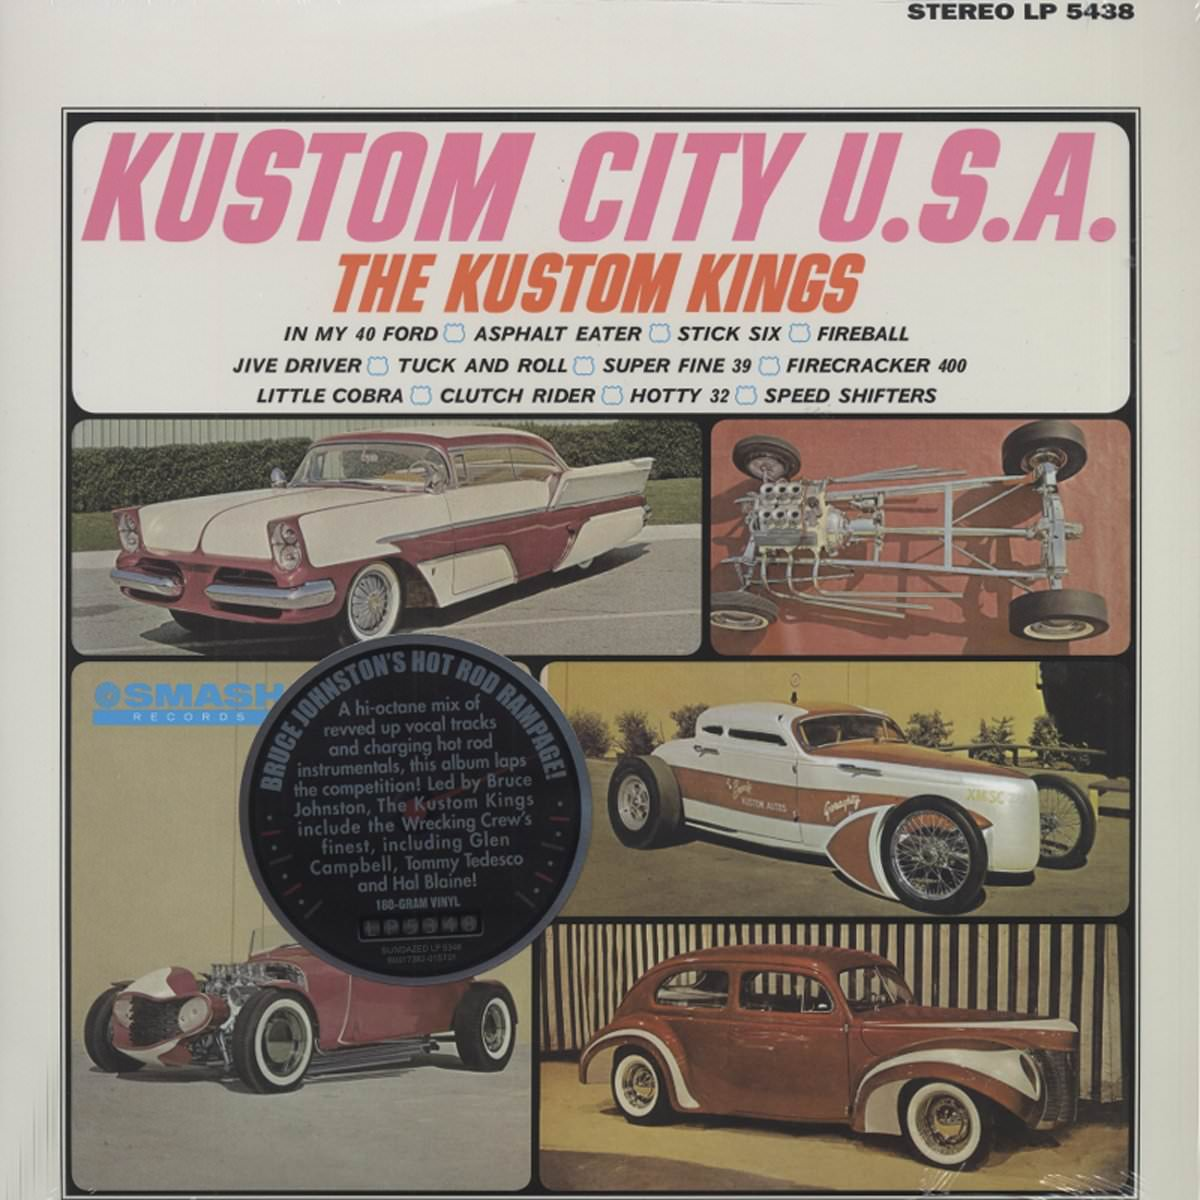 The Kustom Kings: Kustom City U.S.A. cover